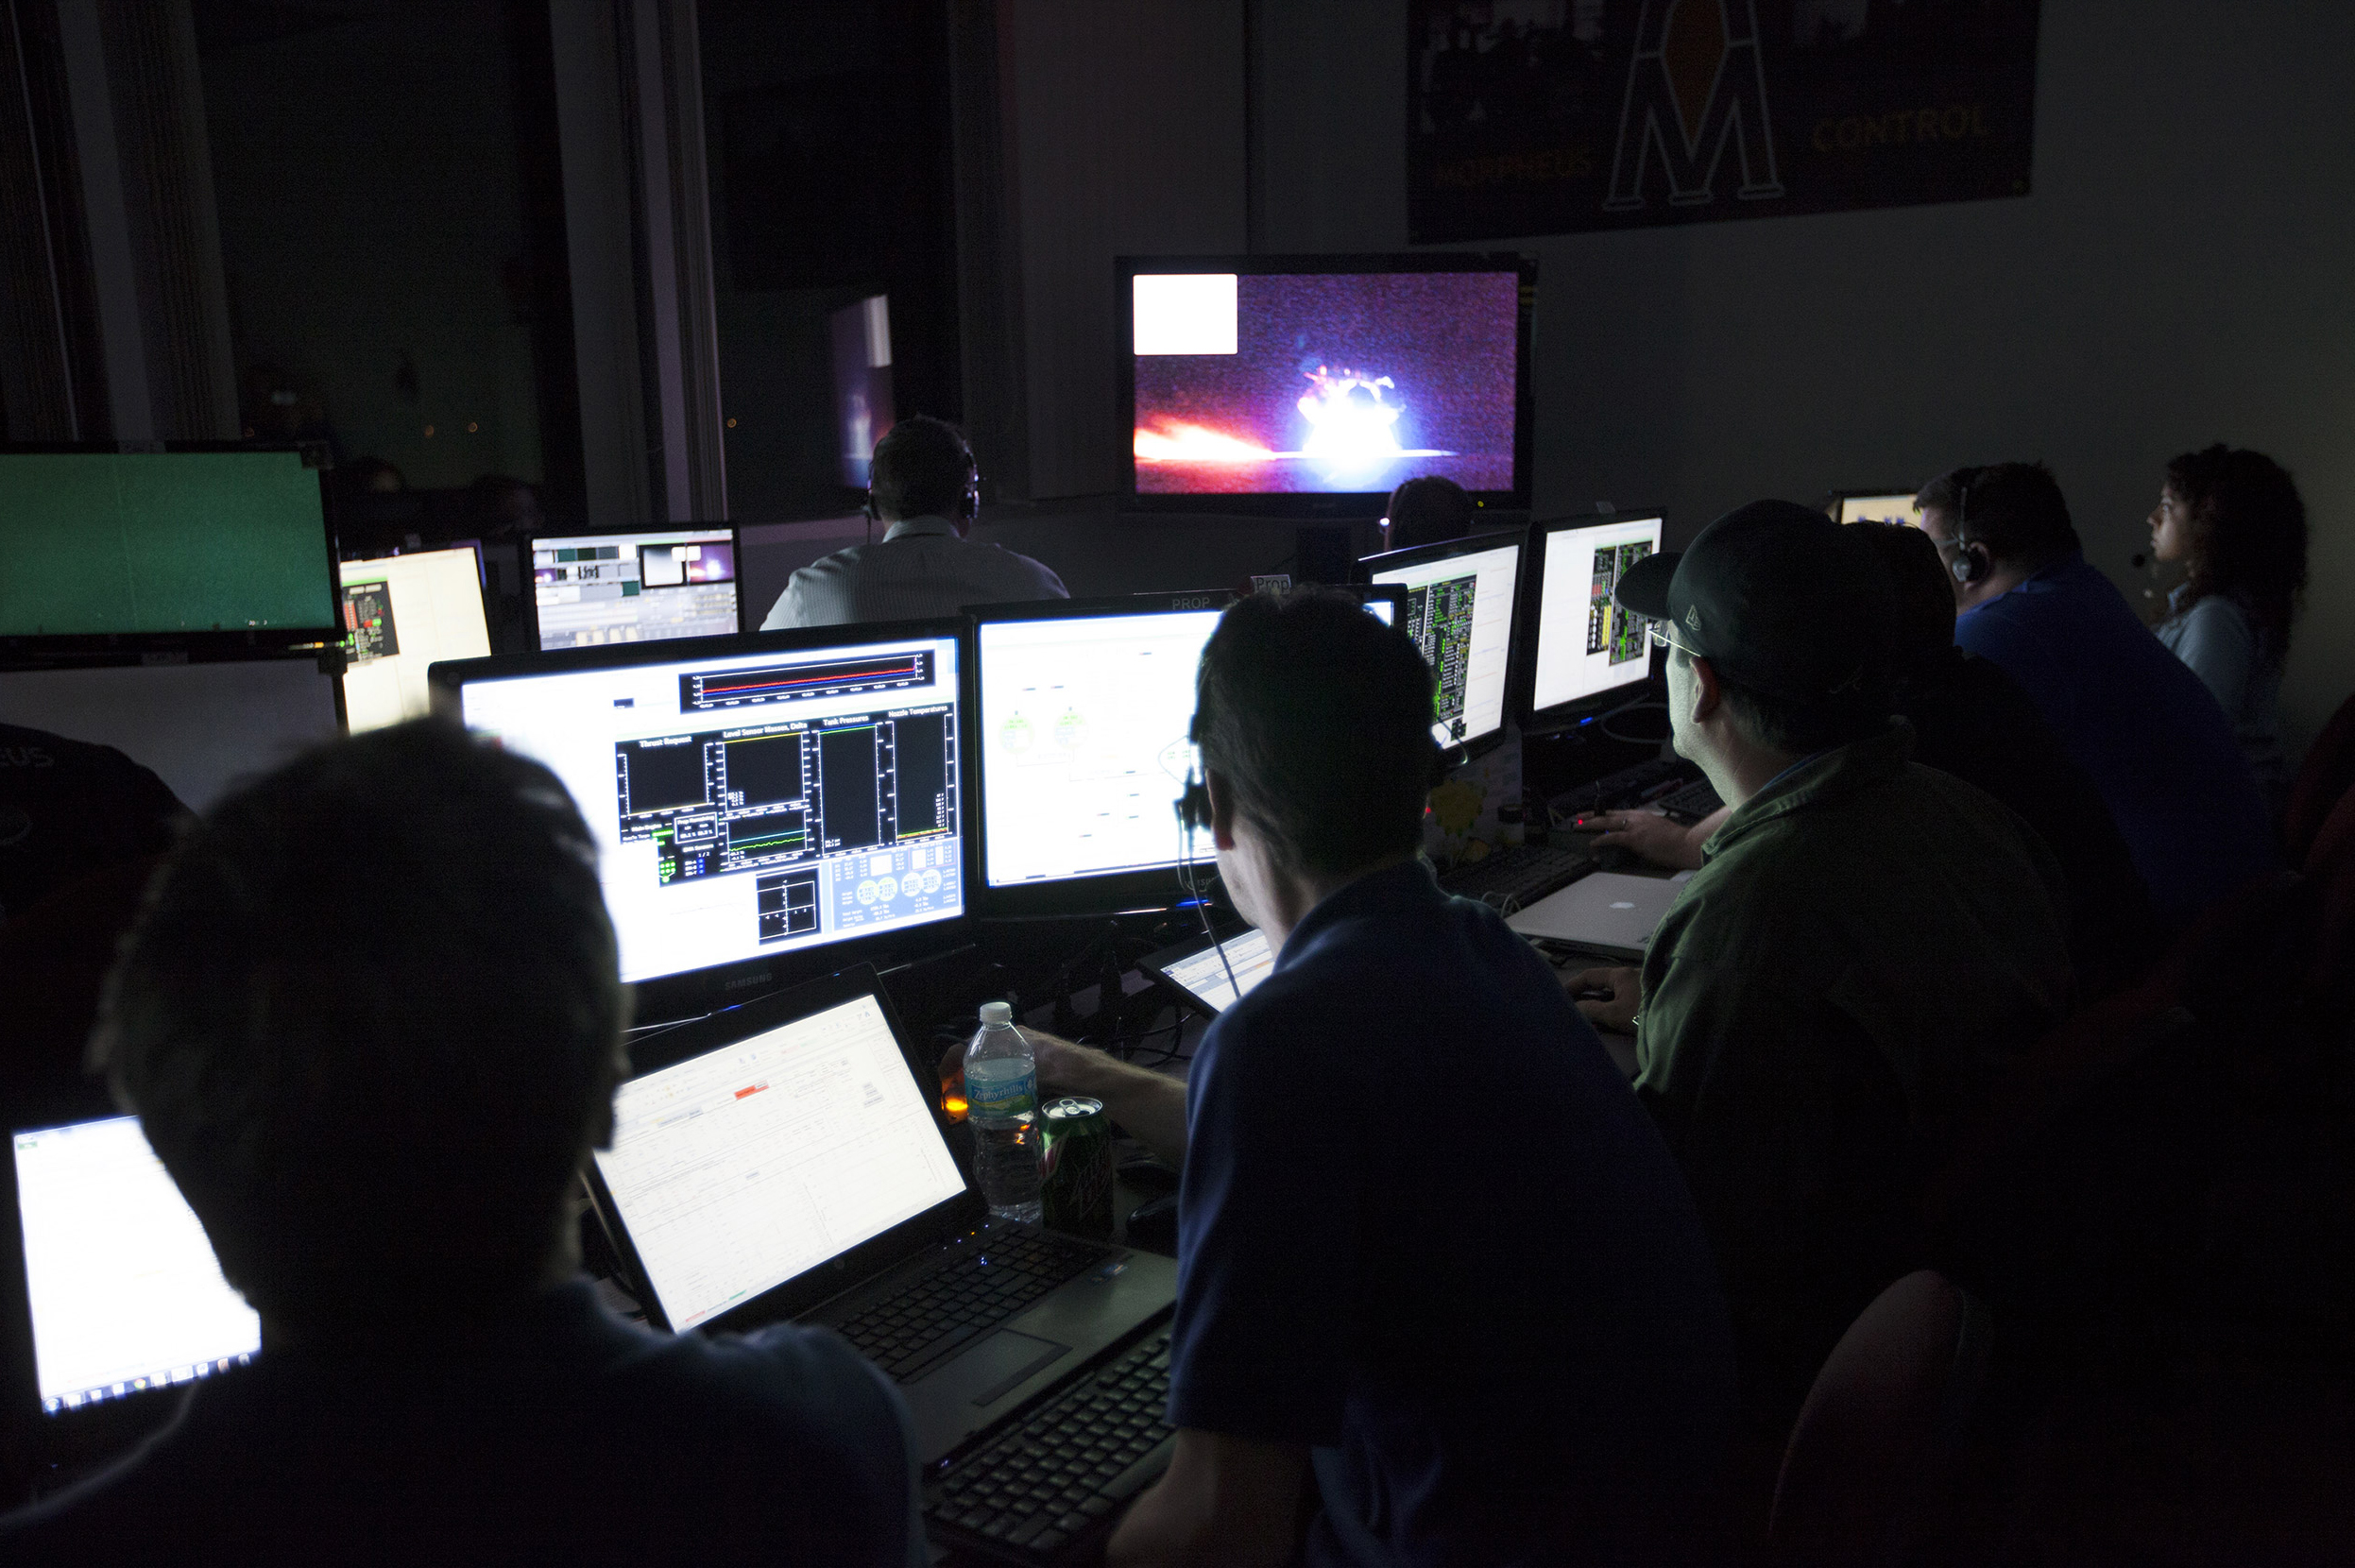 Engineers in the Morpheus Control Room monitor the Morpheus lander as it lifts off on the first free flight test at night. Credit: NASA/Kim Shiflett